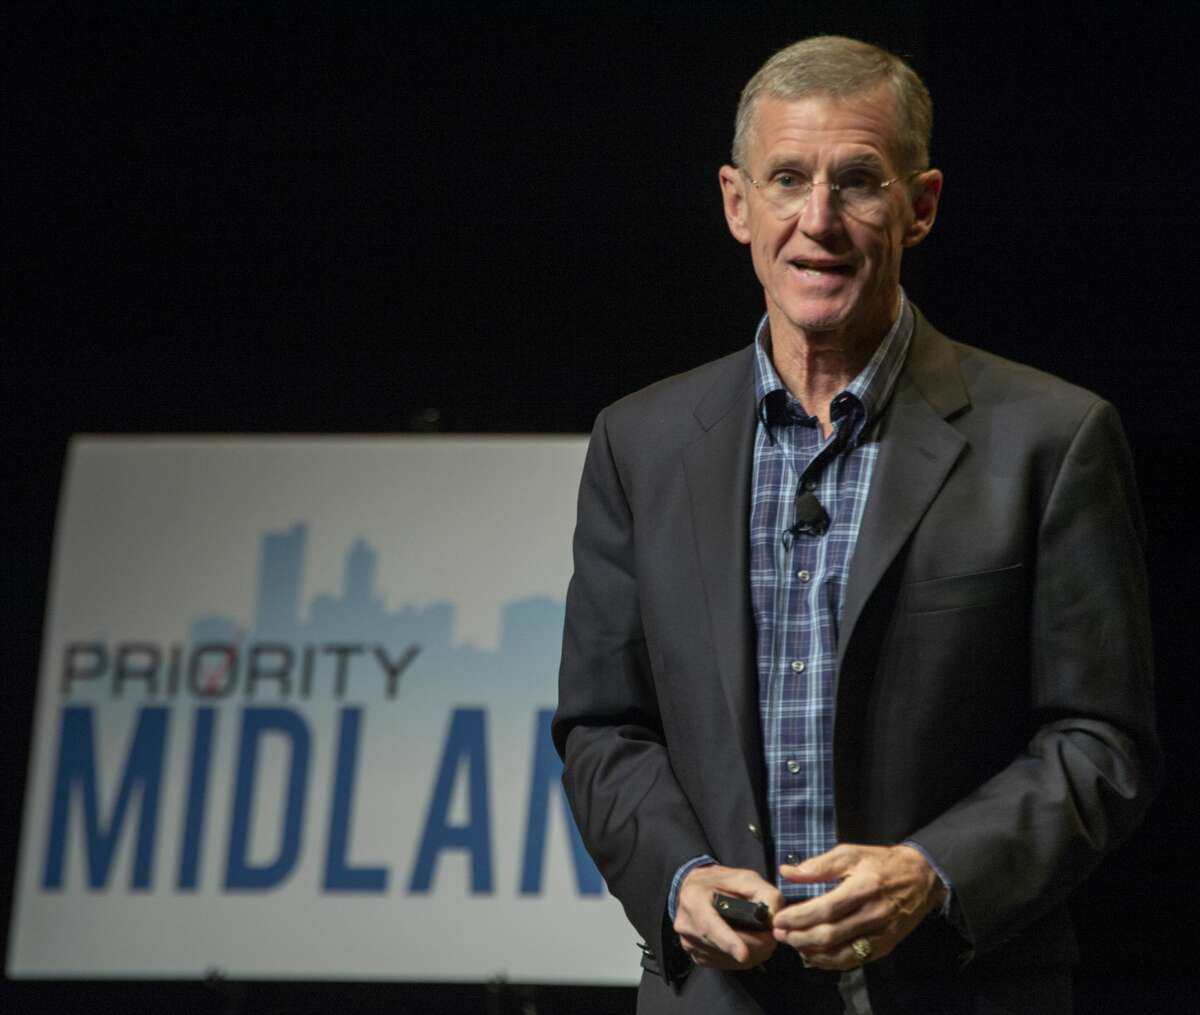 Retired Gen. Stanley McChrystal speaks Feb. 11 at the kickoff event of Priority Midland, an initiative to bring Midland area leaders, community members ad taxing entities together for the betterment of Midland.